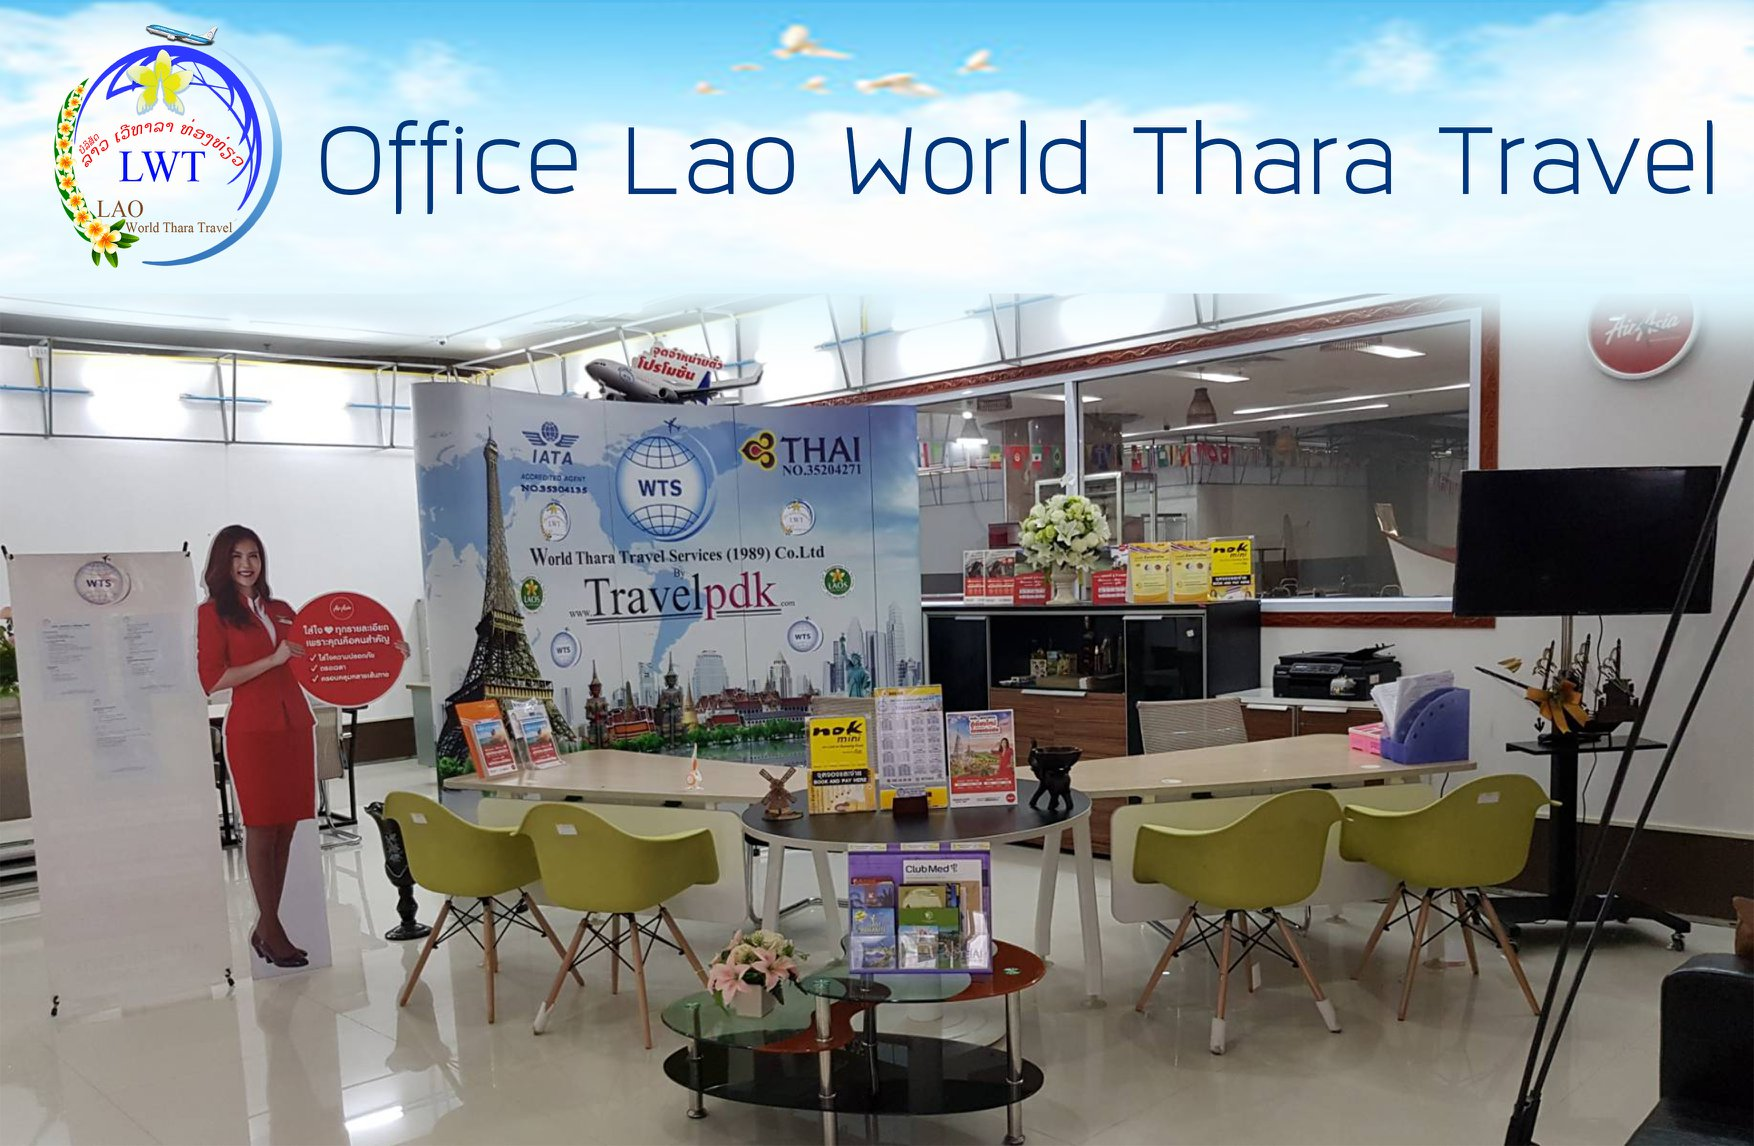 Lao World Thara Travel Co. LTD, a full service travel agency based in Vientiane, Laos